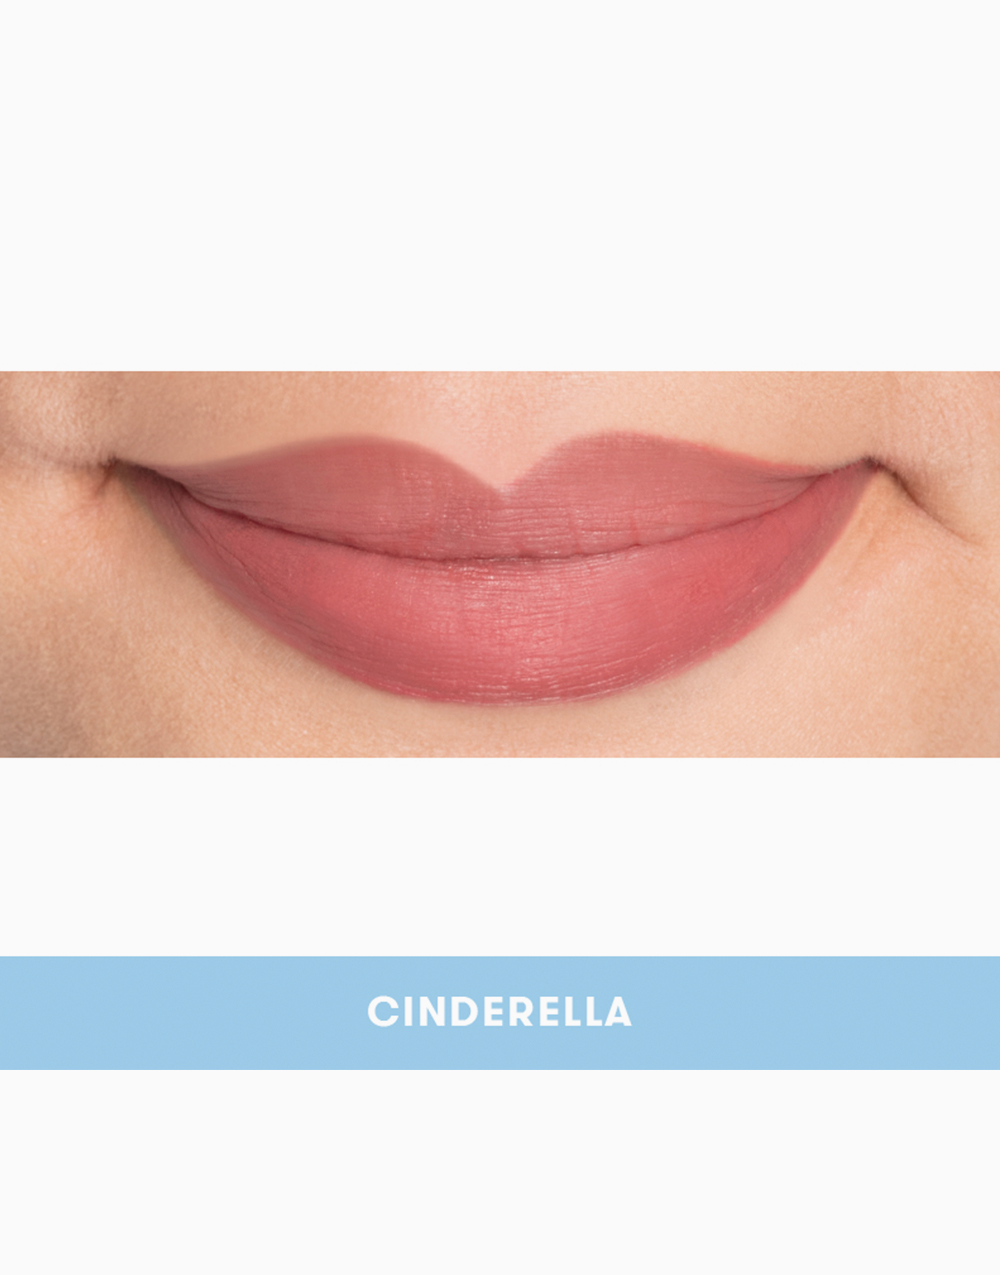 Happy Skin x Disney Vivid Cotton Lip Mousse by Happy Skin | Cinderella